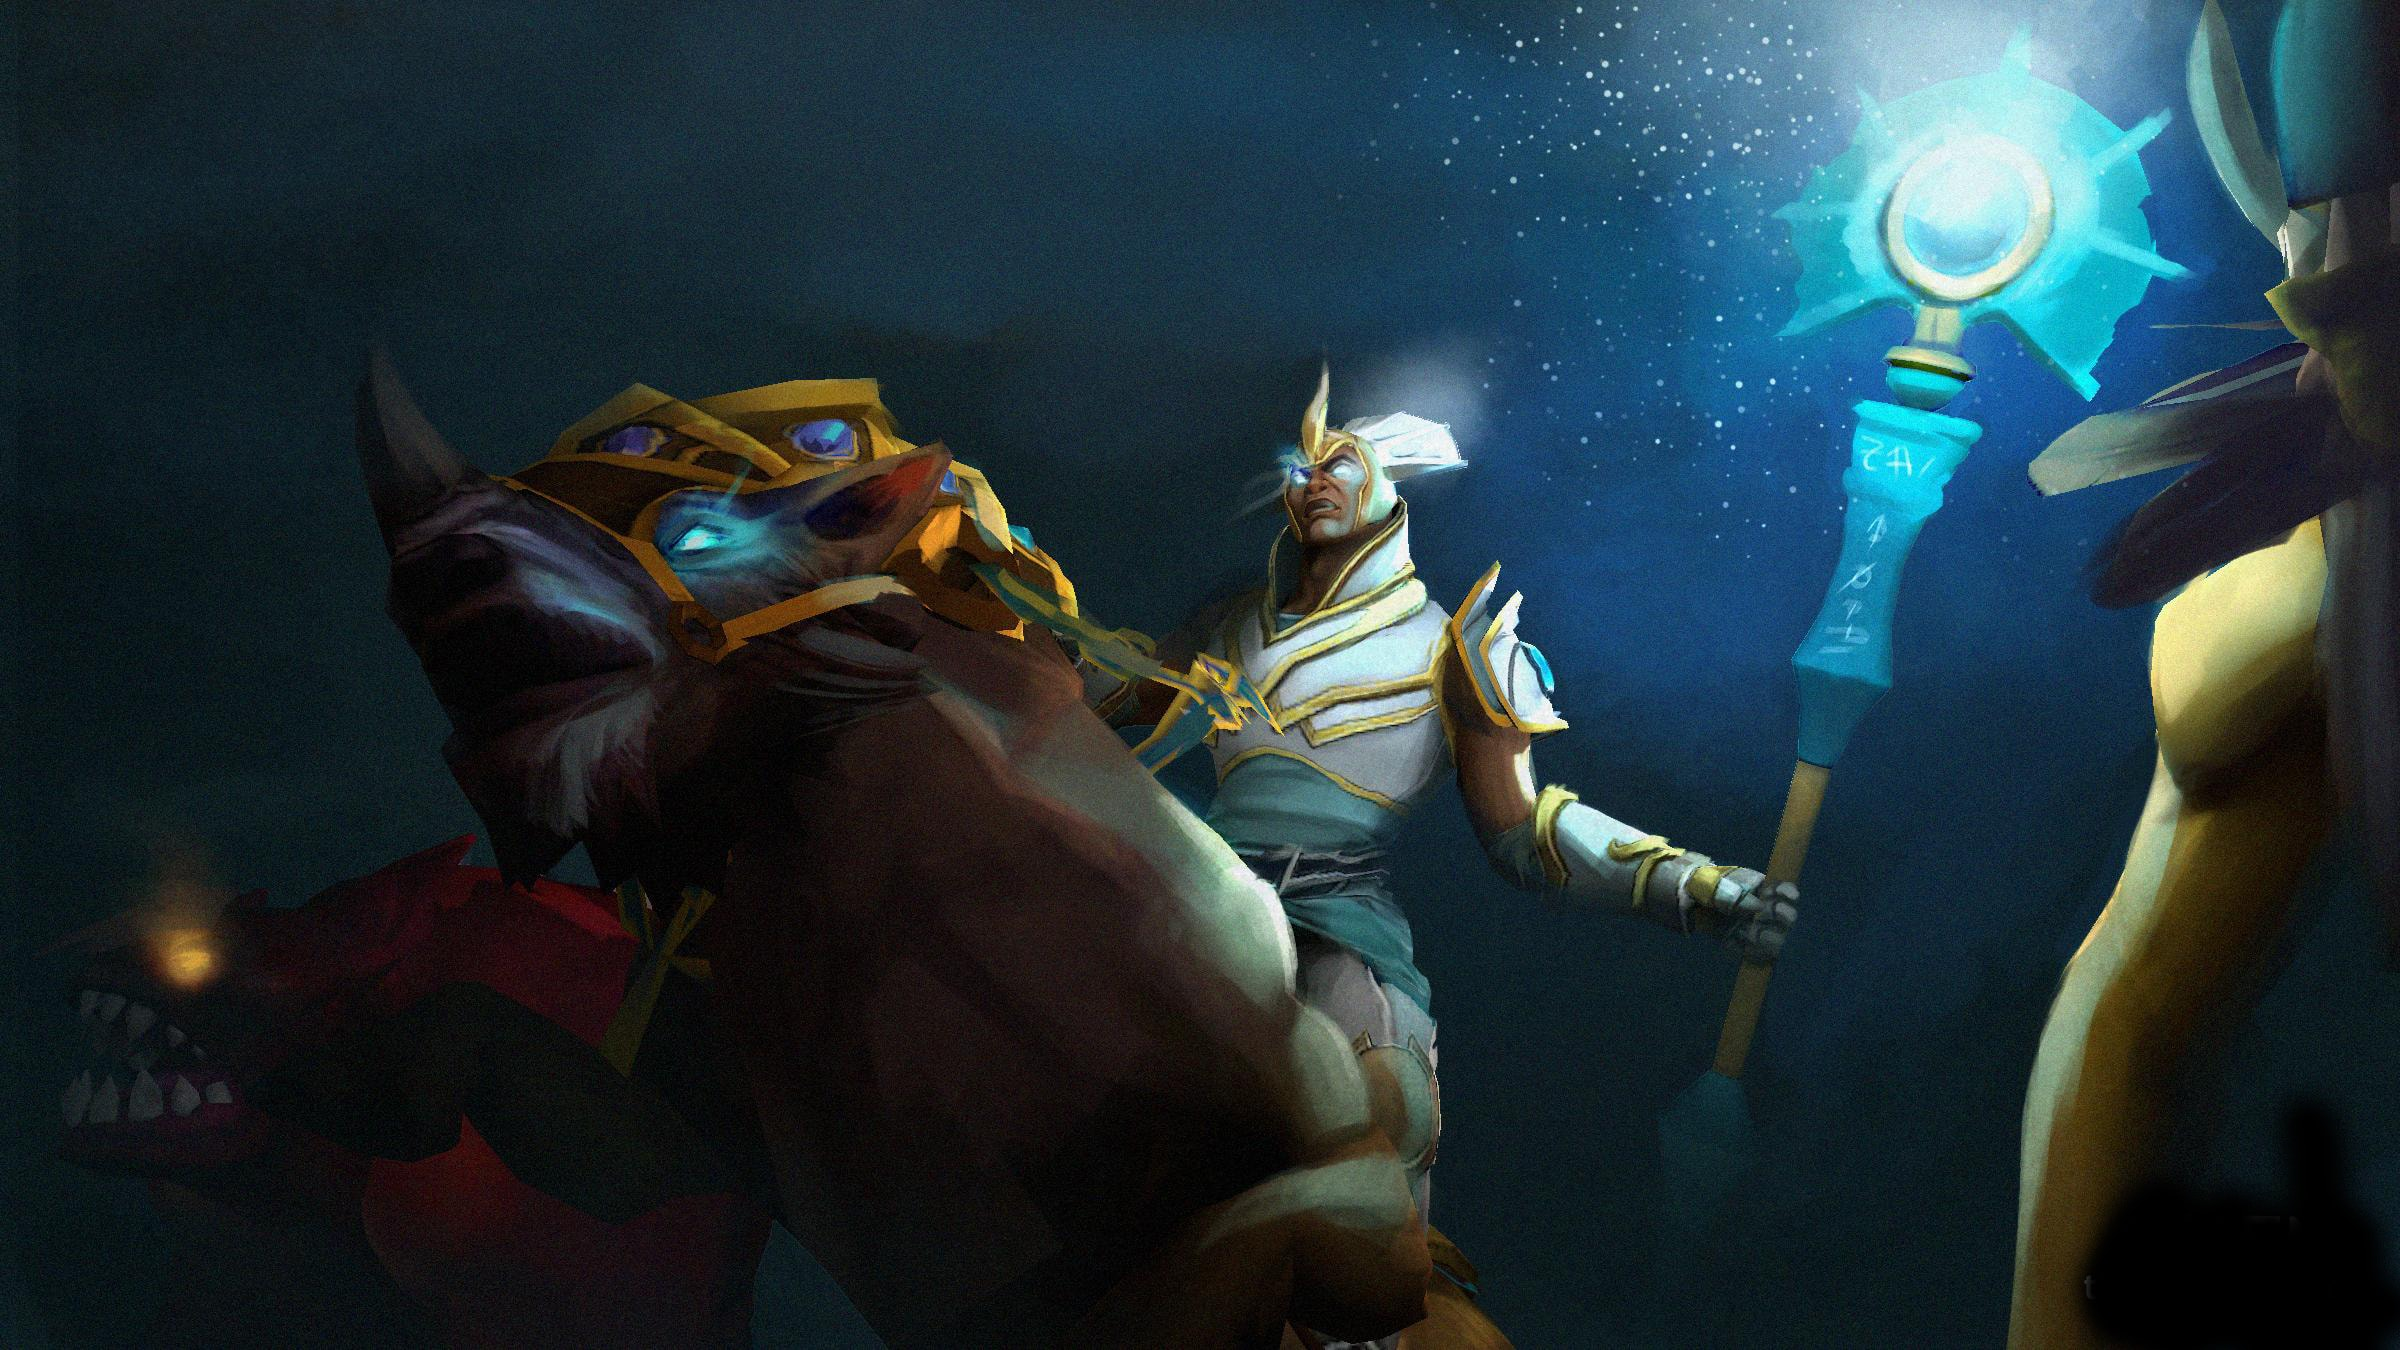 Dota2 : Chen Wallpapers hd